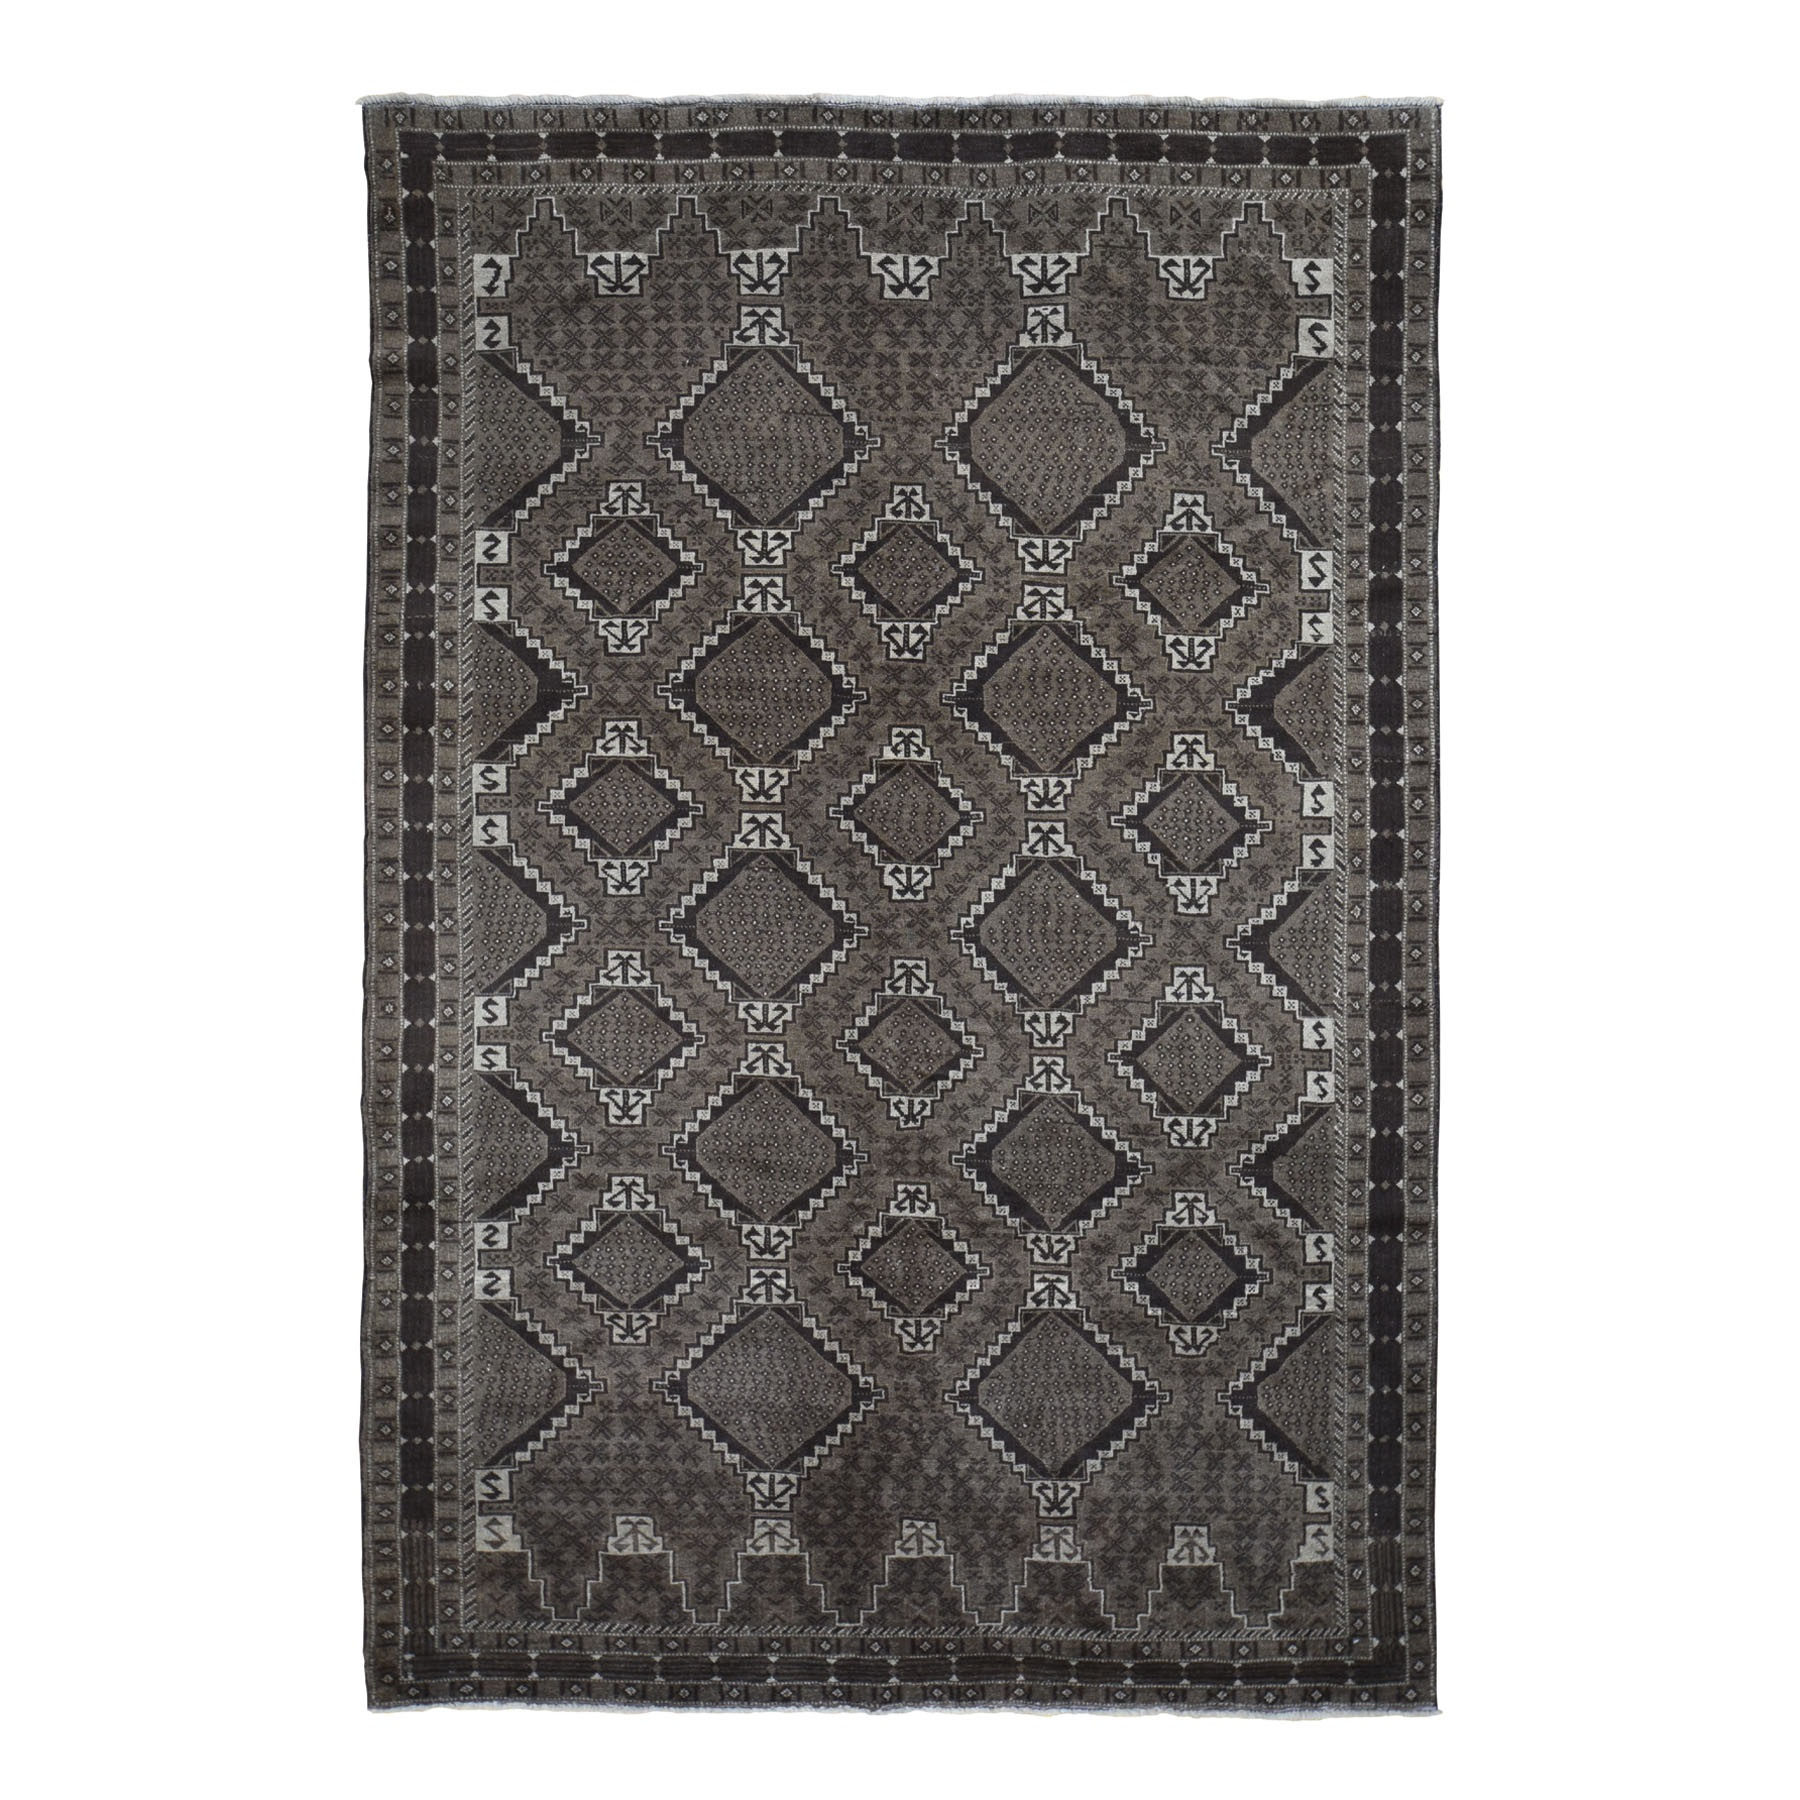 Nomadic And Village Collection Hand Knotted Brown Rug No: 0196290